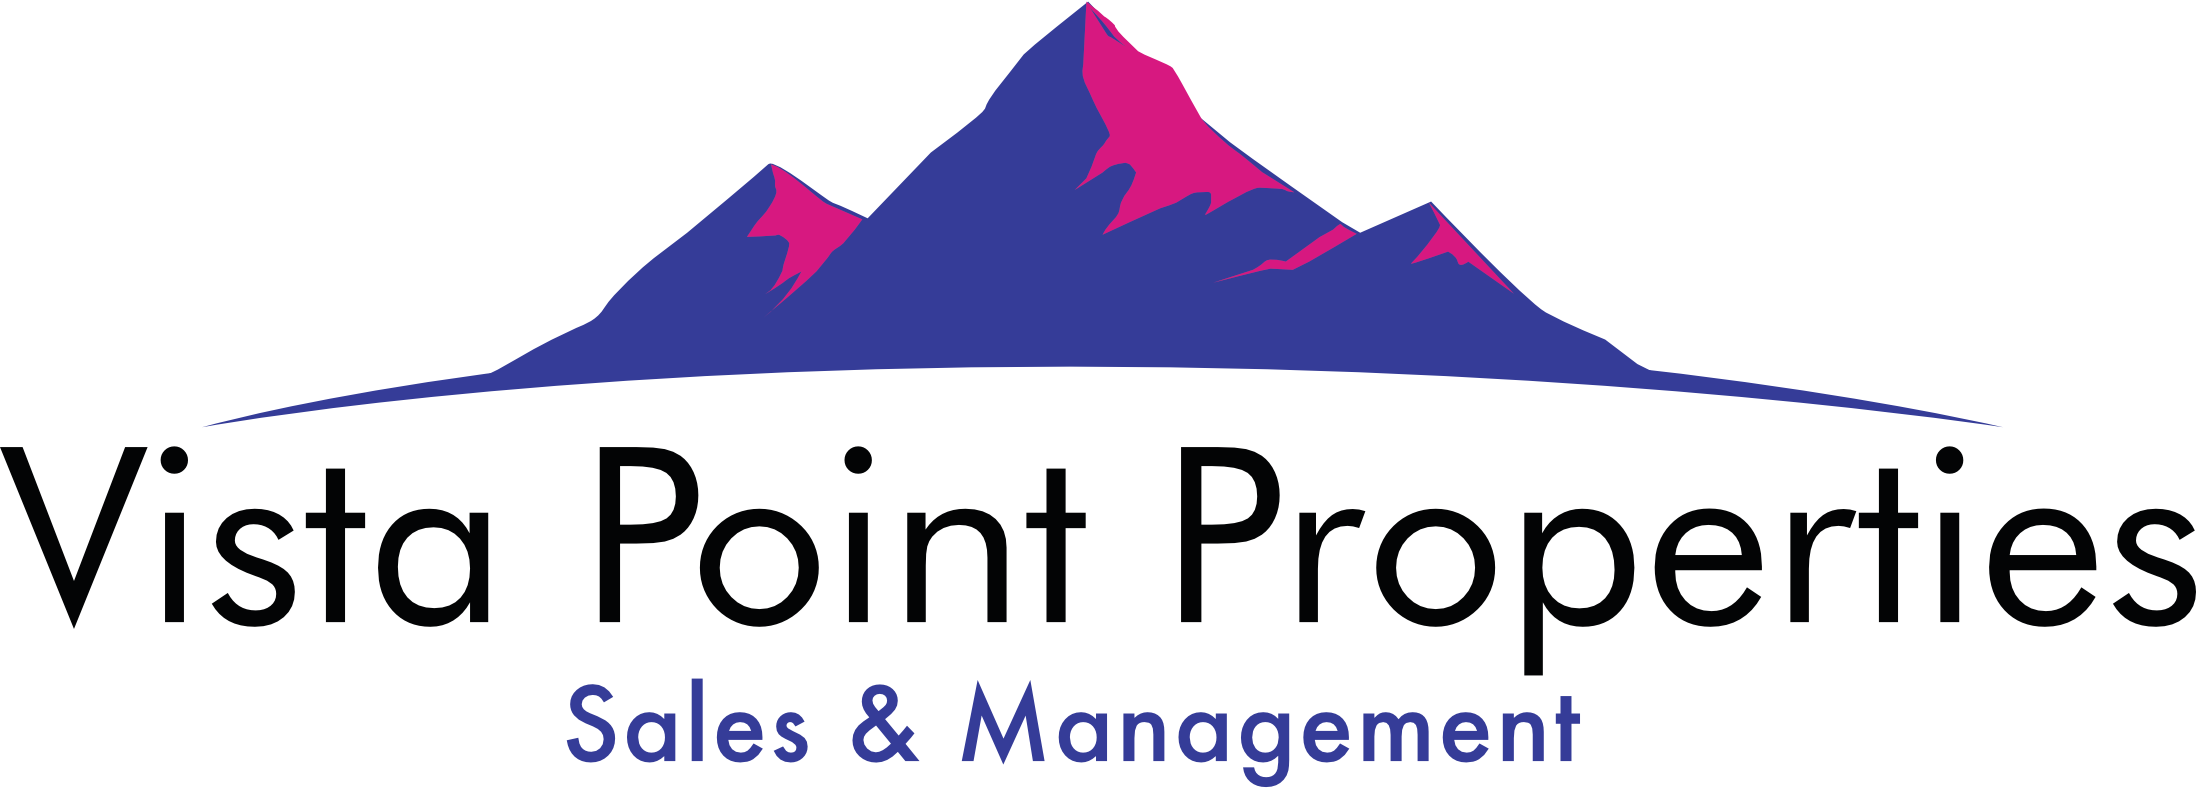 Vista Point Properties |   Blog